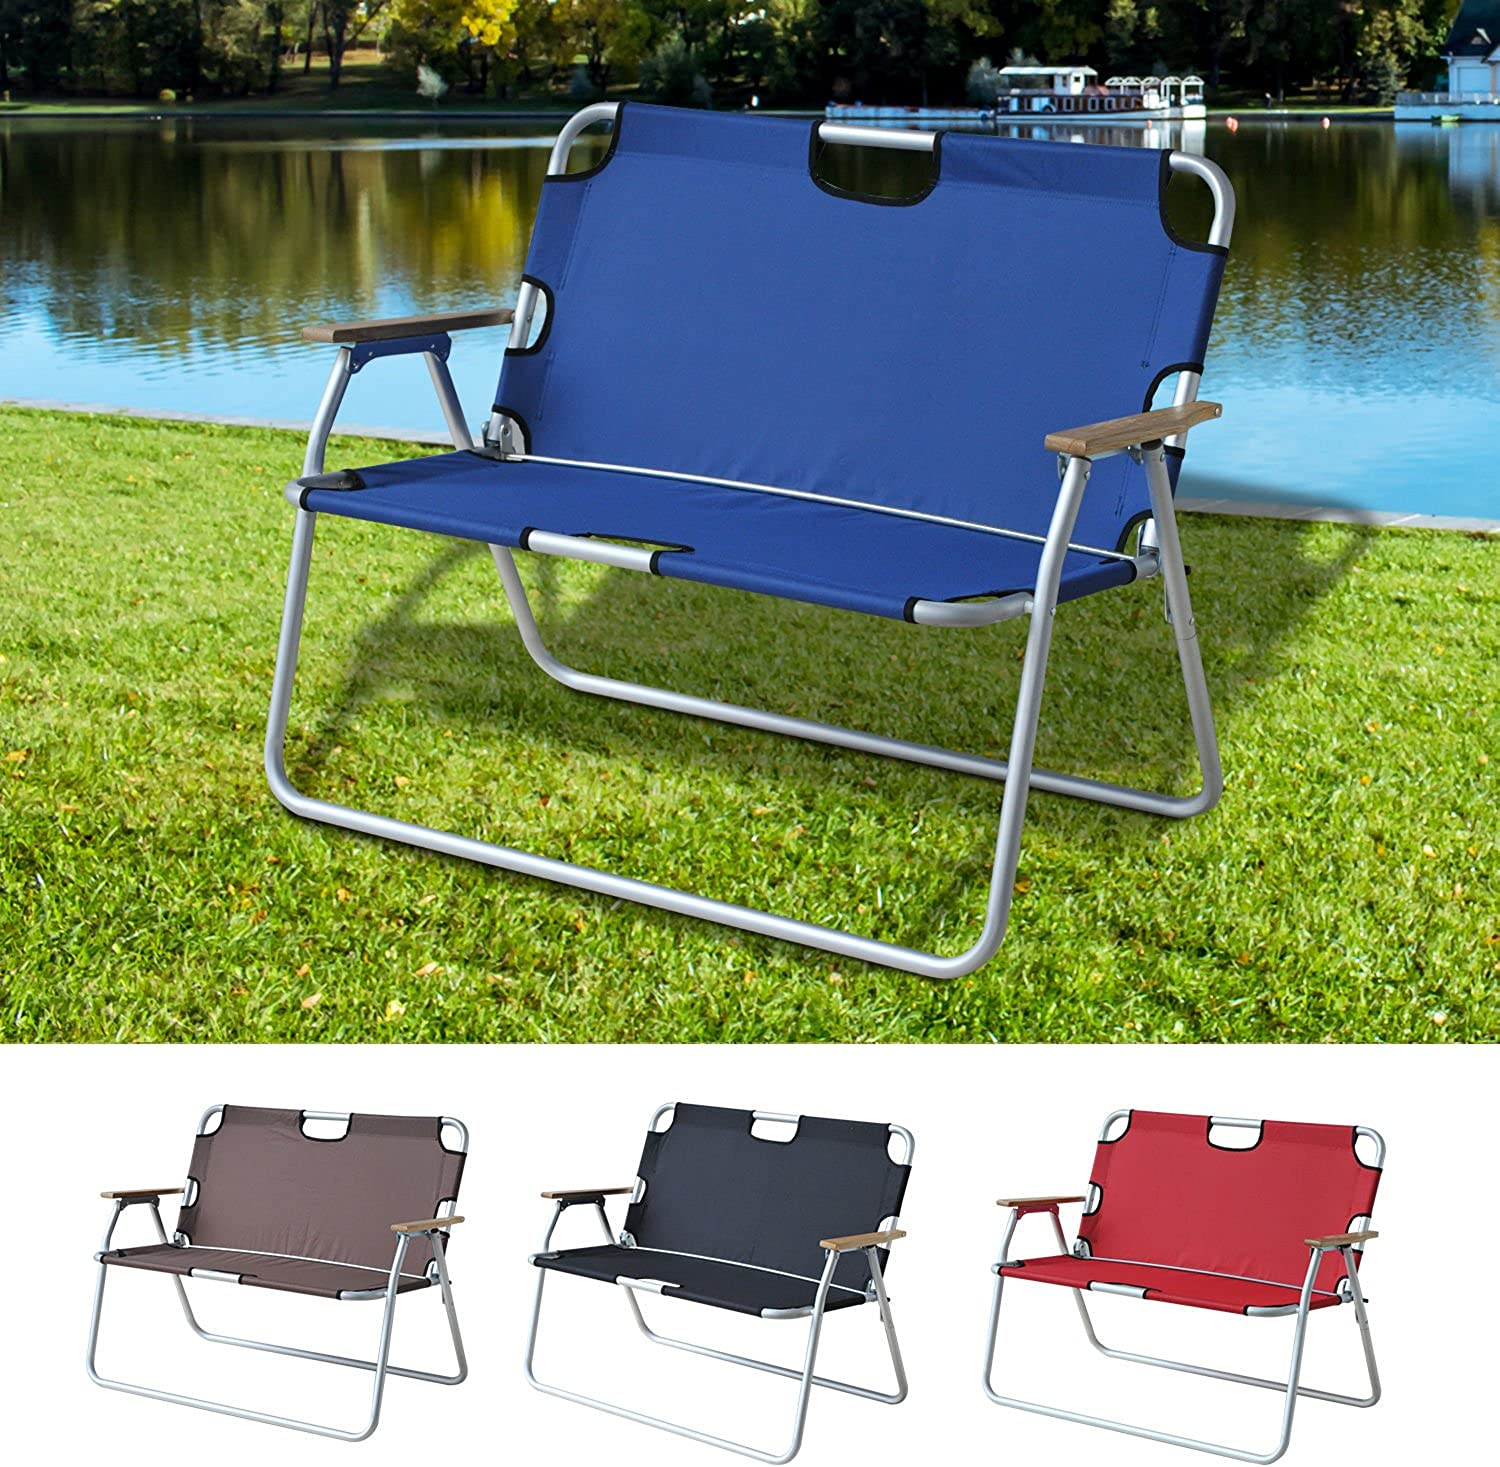 Generic O8O4168O luminum Picnic Camping g Bench Seat Foldable cnic Ca Outdoor Lawn Chair Foldab Bench Aluminum Armrest color Random 2 Pers 2 Person NV_1008004168TYQFUS32